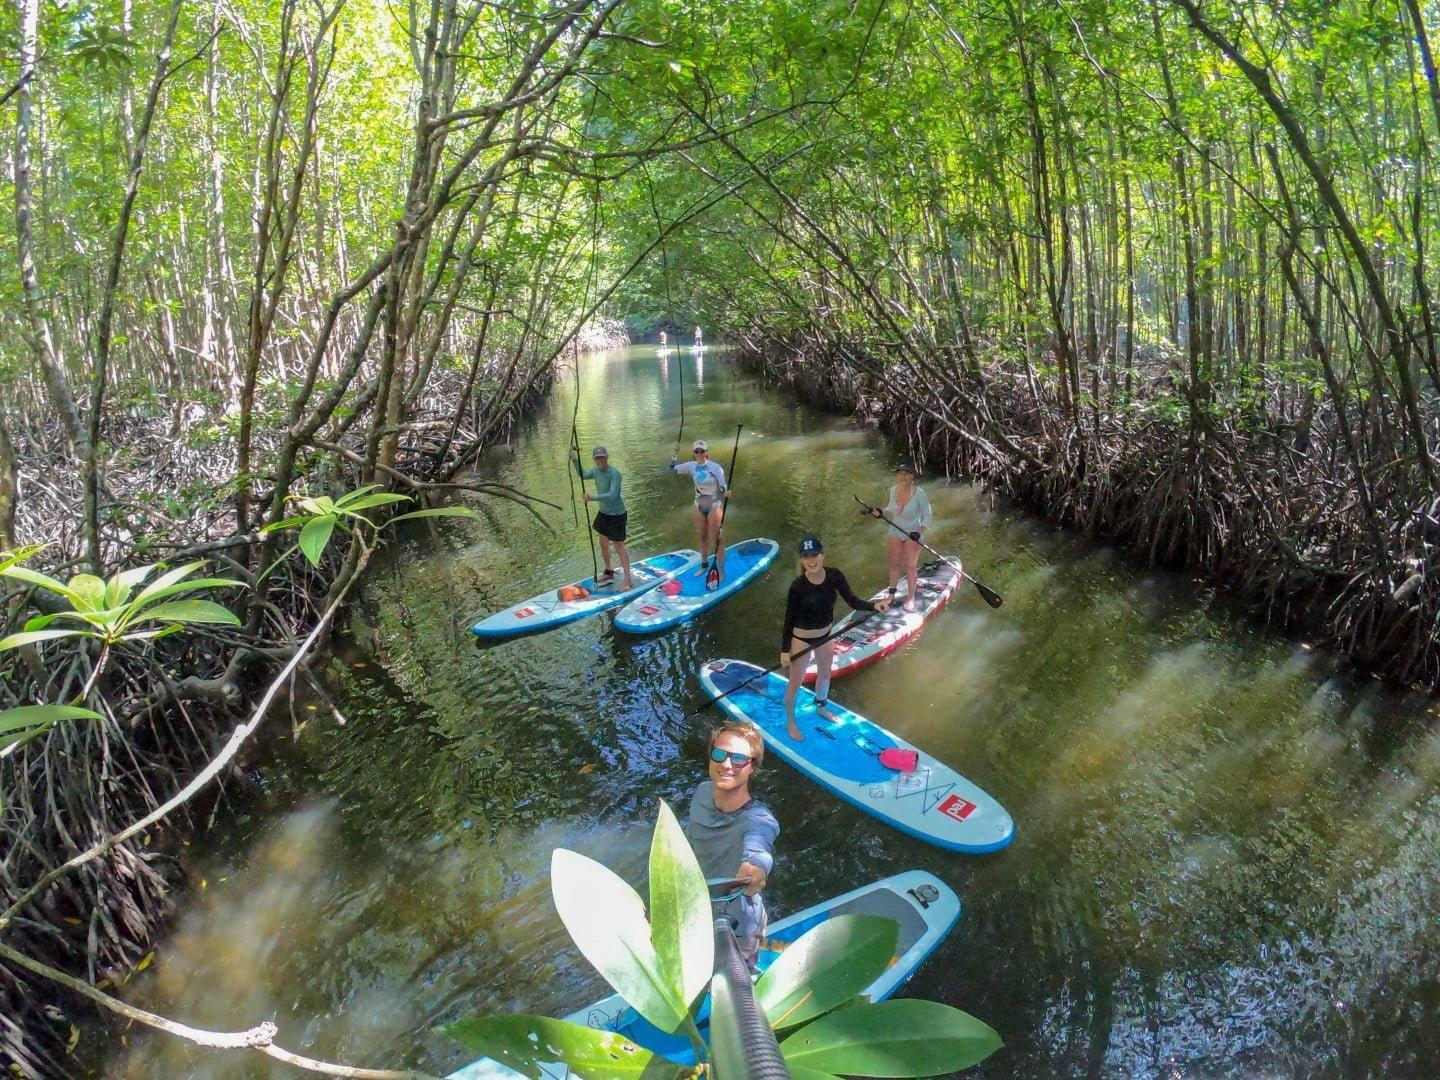 Suping in the jungle